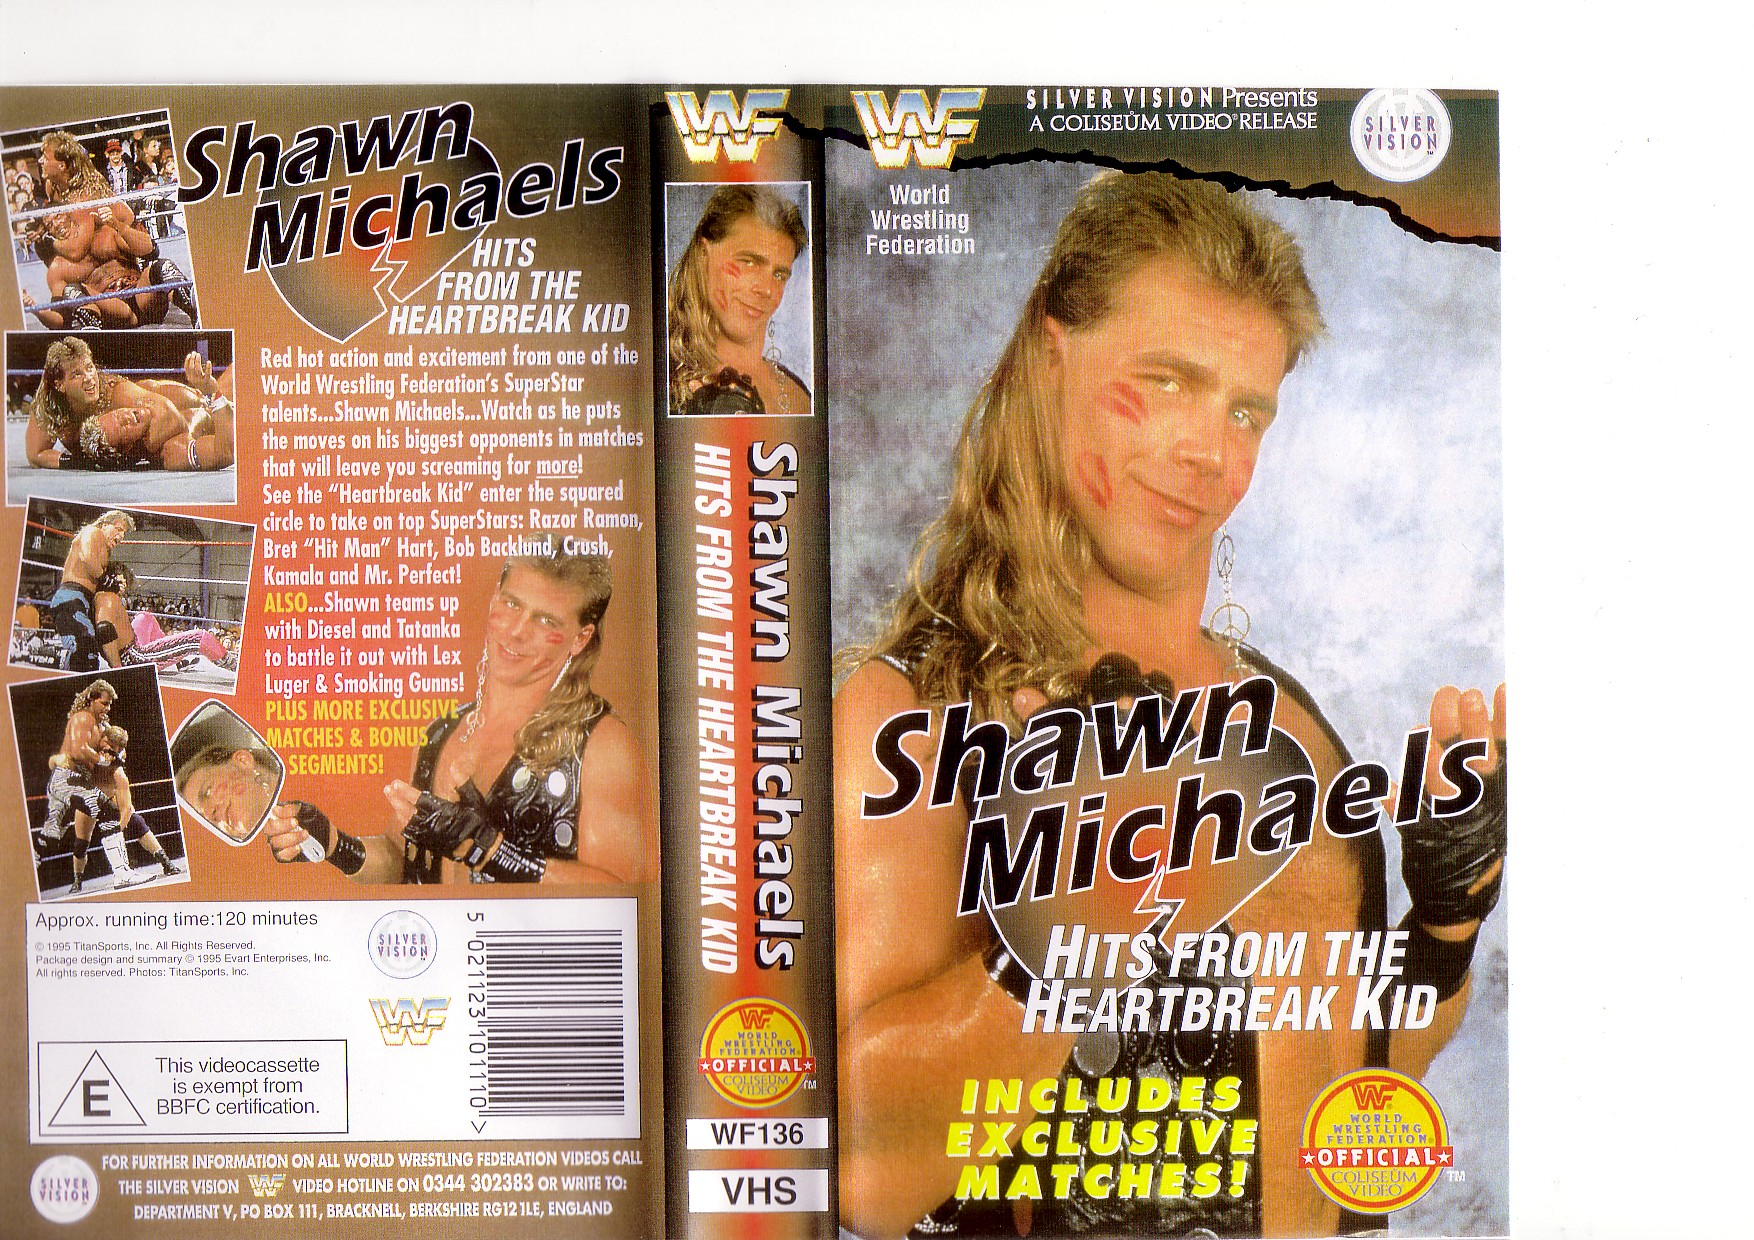 WWF%20Shawn%20Michaels%20-%20Hits%20from%20the%20HBK